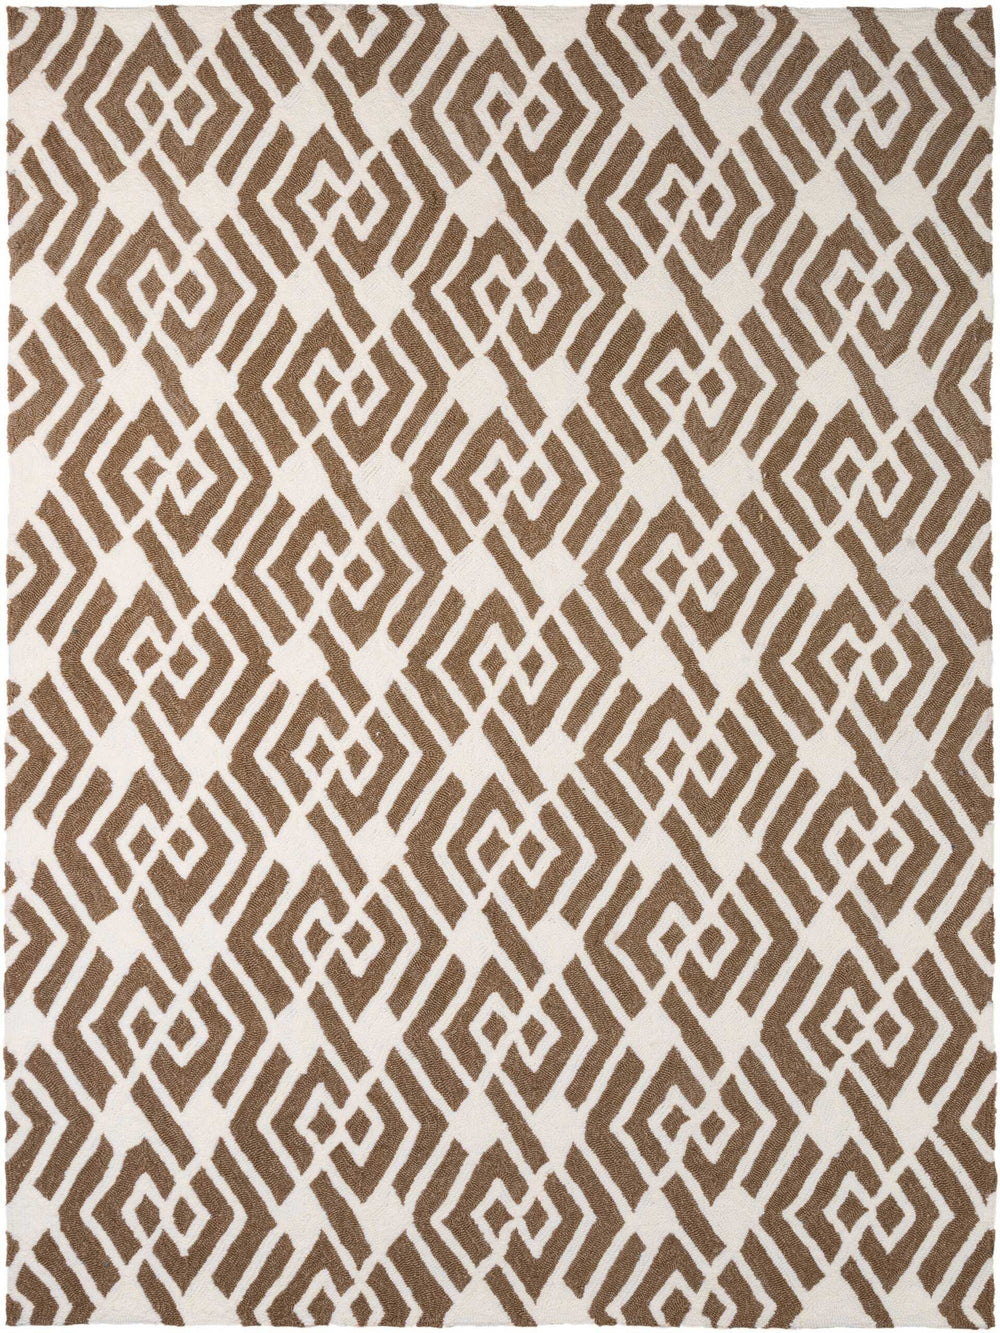 Amer Rugs Piazza PAZ-47 Area Rug